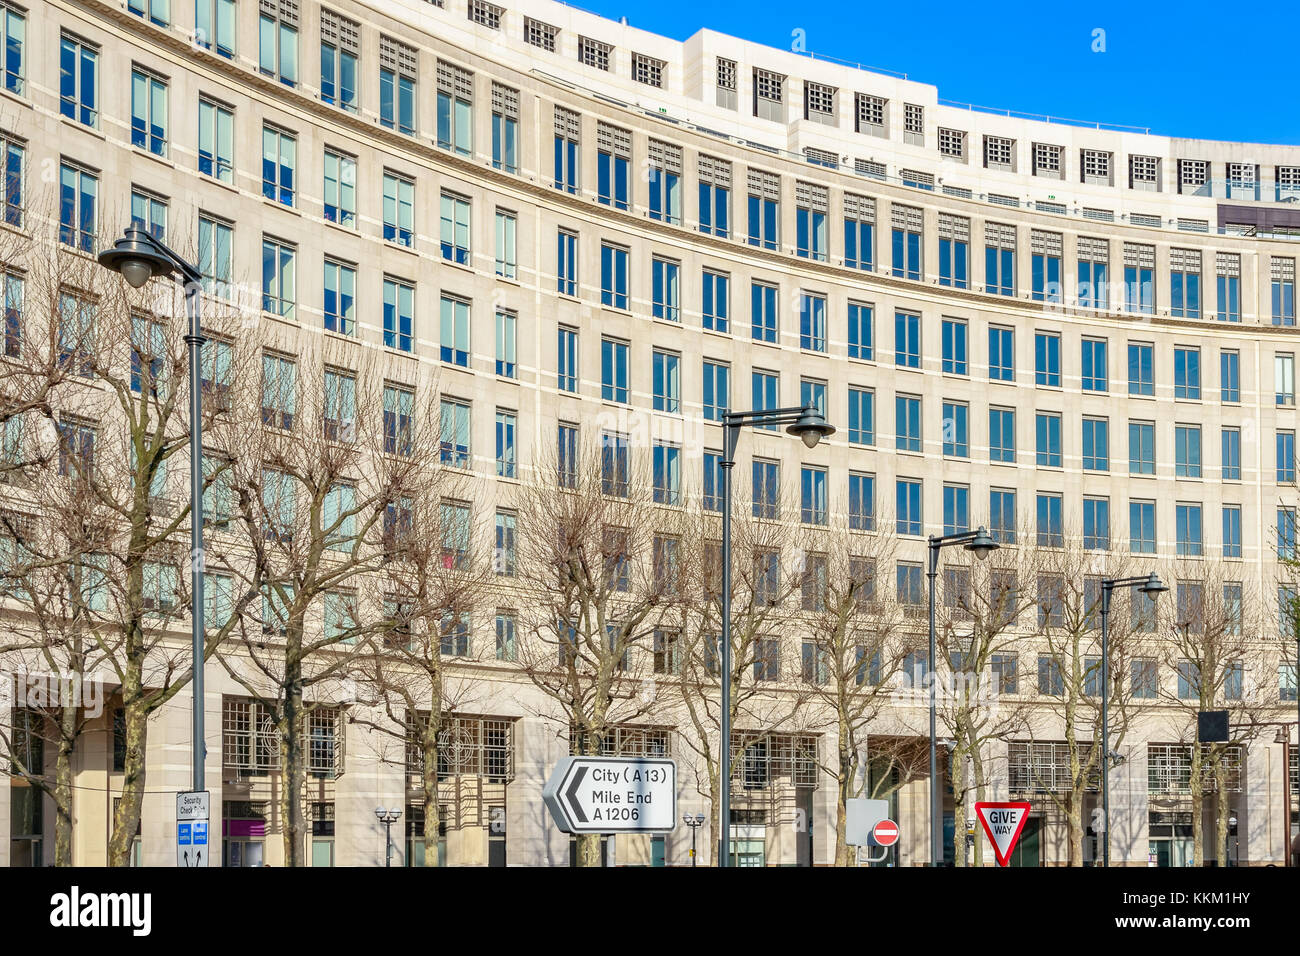 Facade of an office building on Westferry Circus in Canary Wharf, London - Stock Image